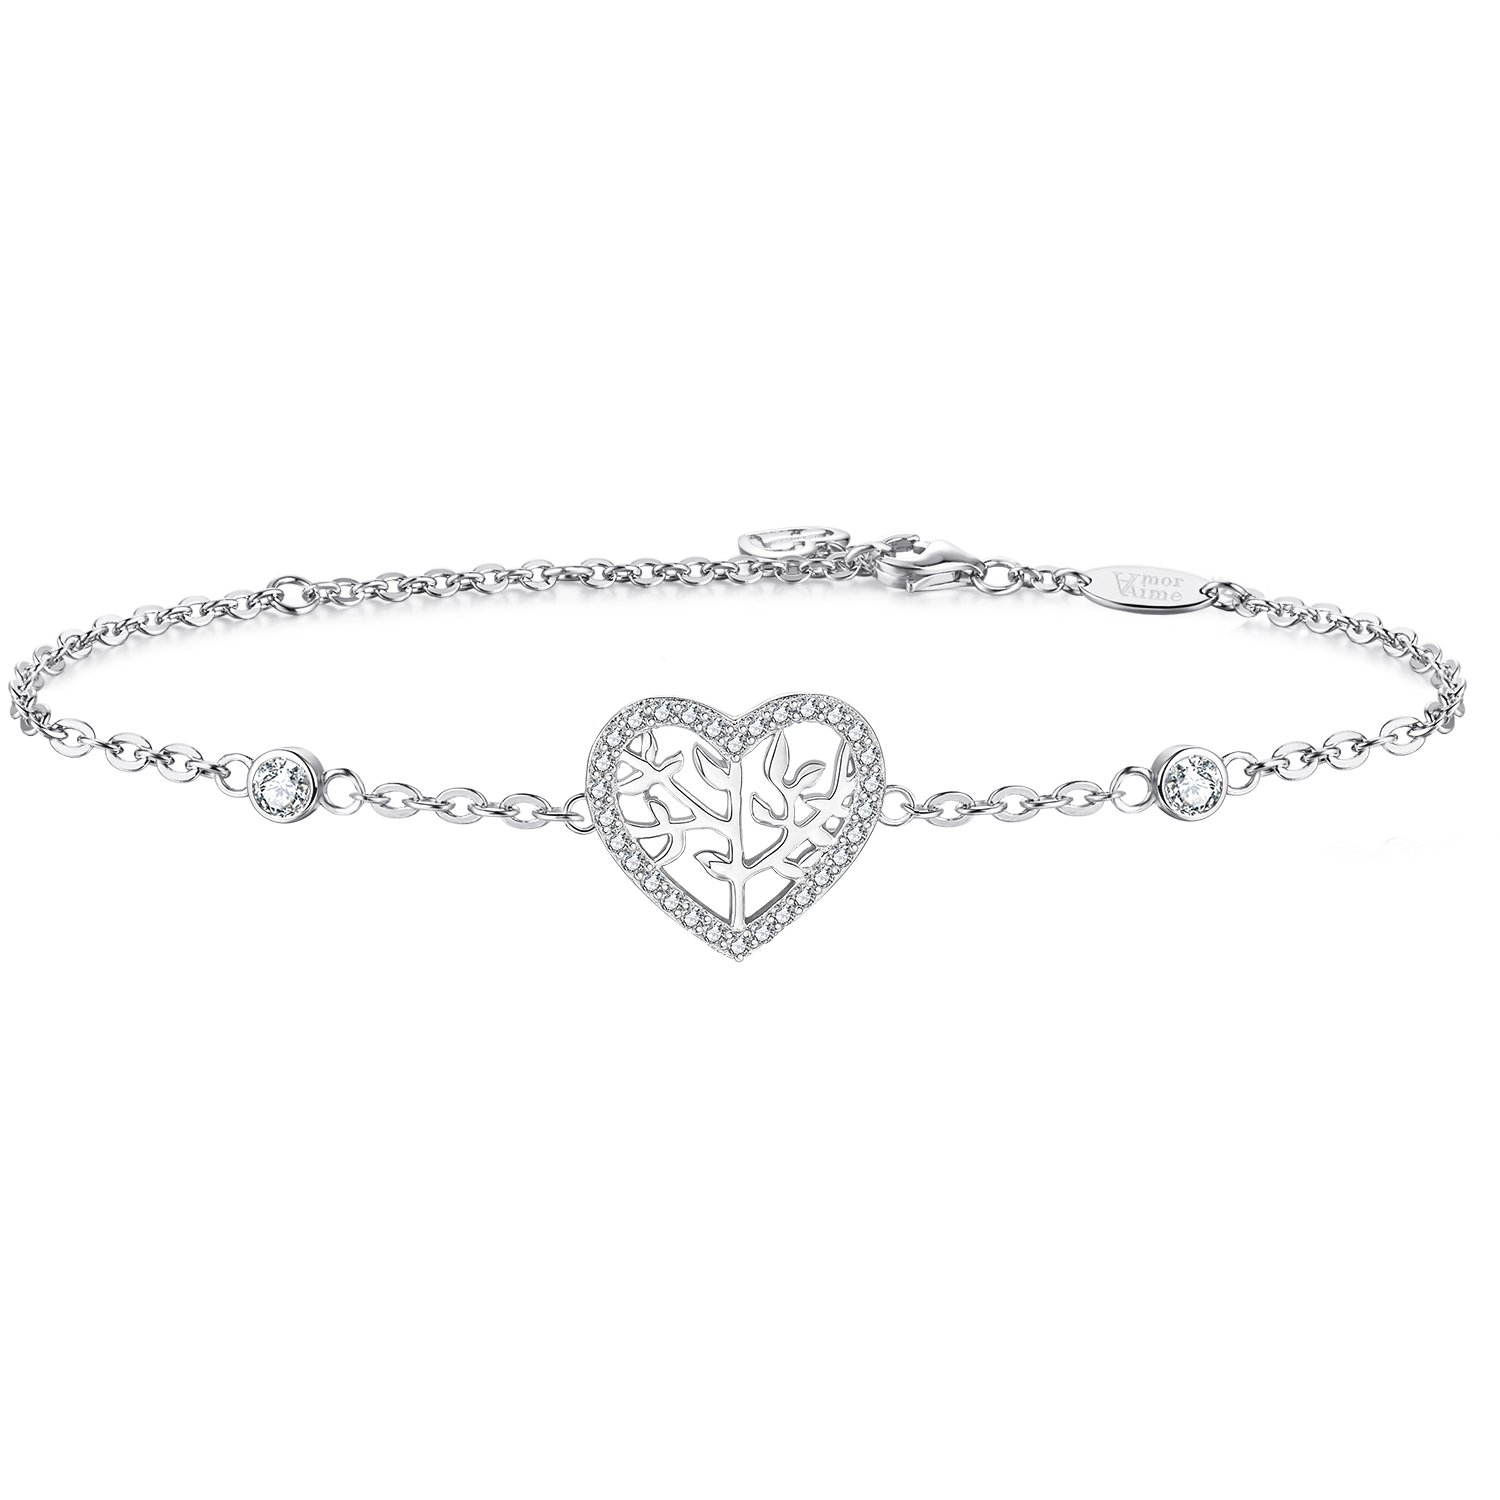 AmorAime 925 Sterling Silver Family Tree of Life Heart Cubic Zirconia Bracelet for Mother Daughter Grandmother